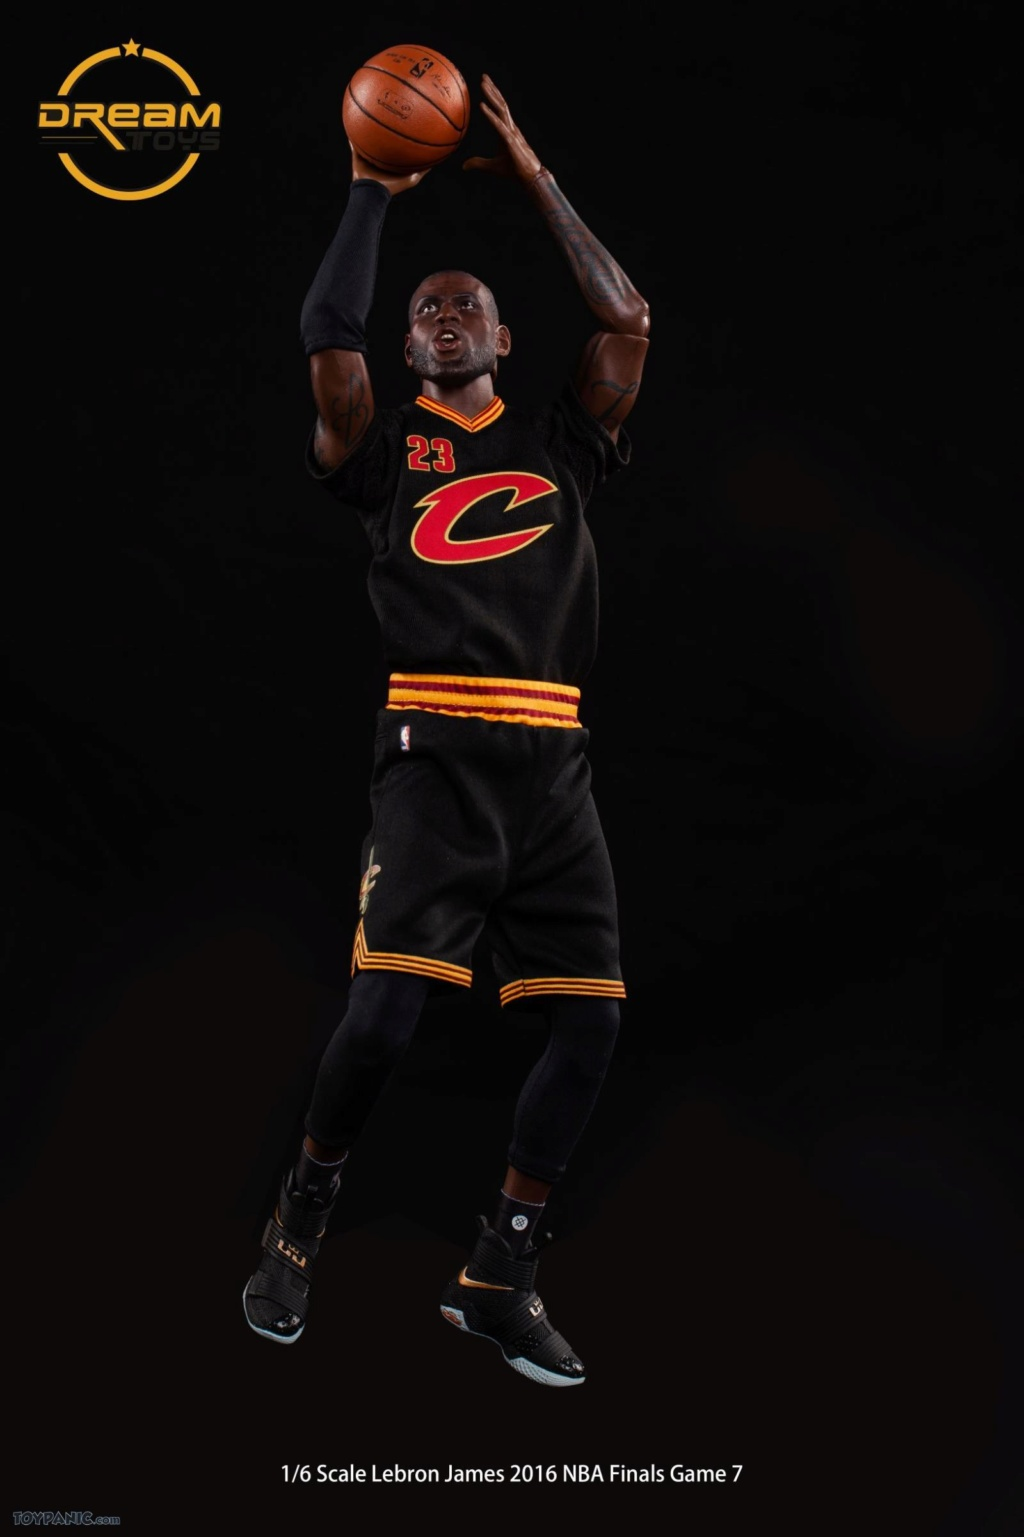 athlete - NEW PRODUCT: DreamToys: NBA Finals Jordan, Bryant, & James 1/6 scale action figures 11420251